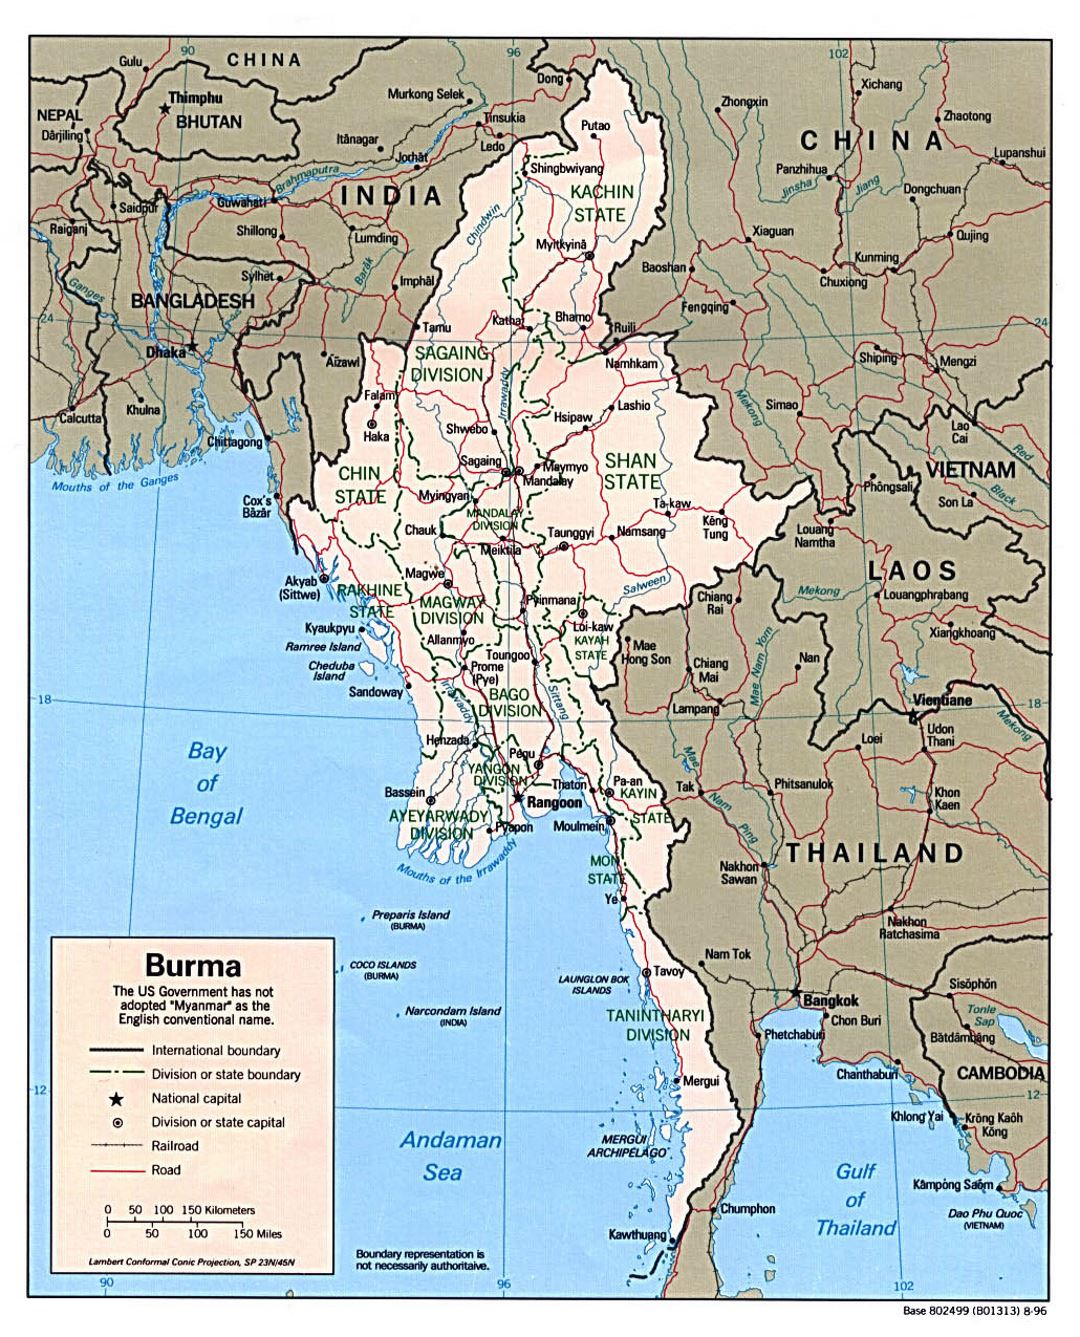 Detailed political and administrative map of Burma with roads and major cities - 1996